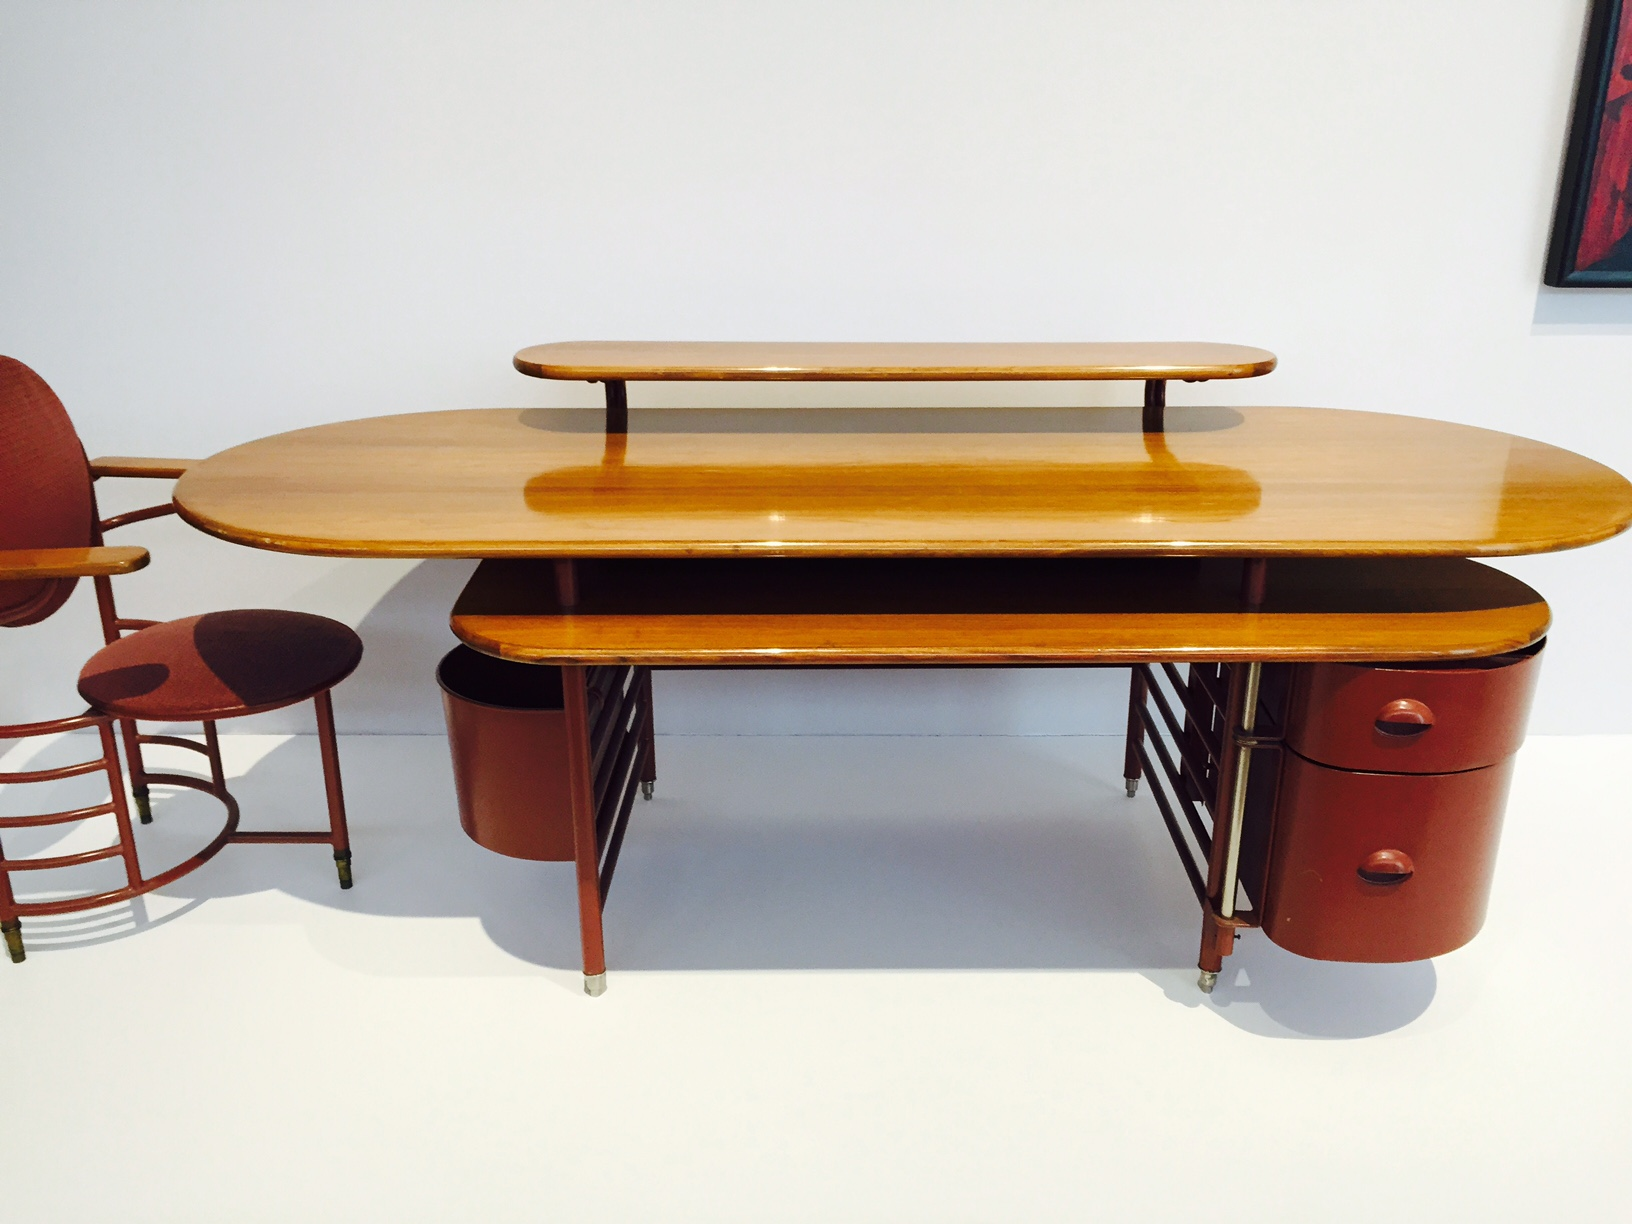 A Frank Lloyd Wright desk and Chair